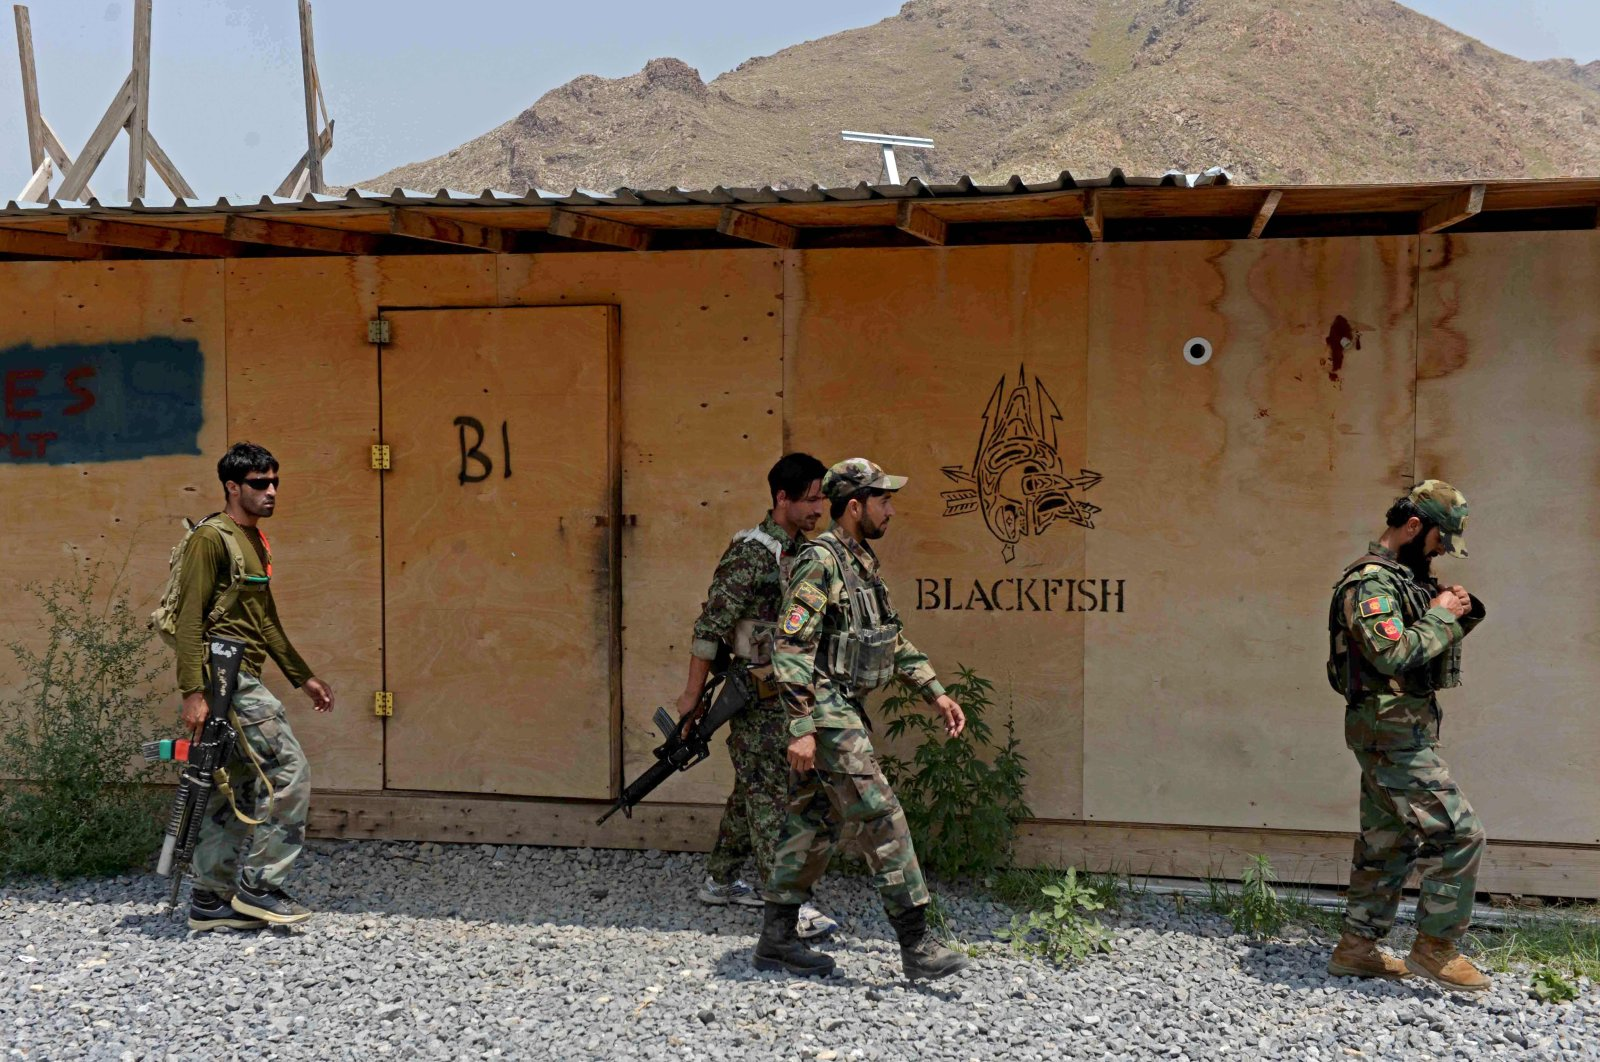 In this picture taken on July 26, 2020, Afghan National Army (ANA) soldiers walk in a U.S. military base, which has been recently handed over to Afghan forces in Achin district of Nangarhar province. (AFP Photo)